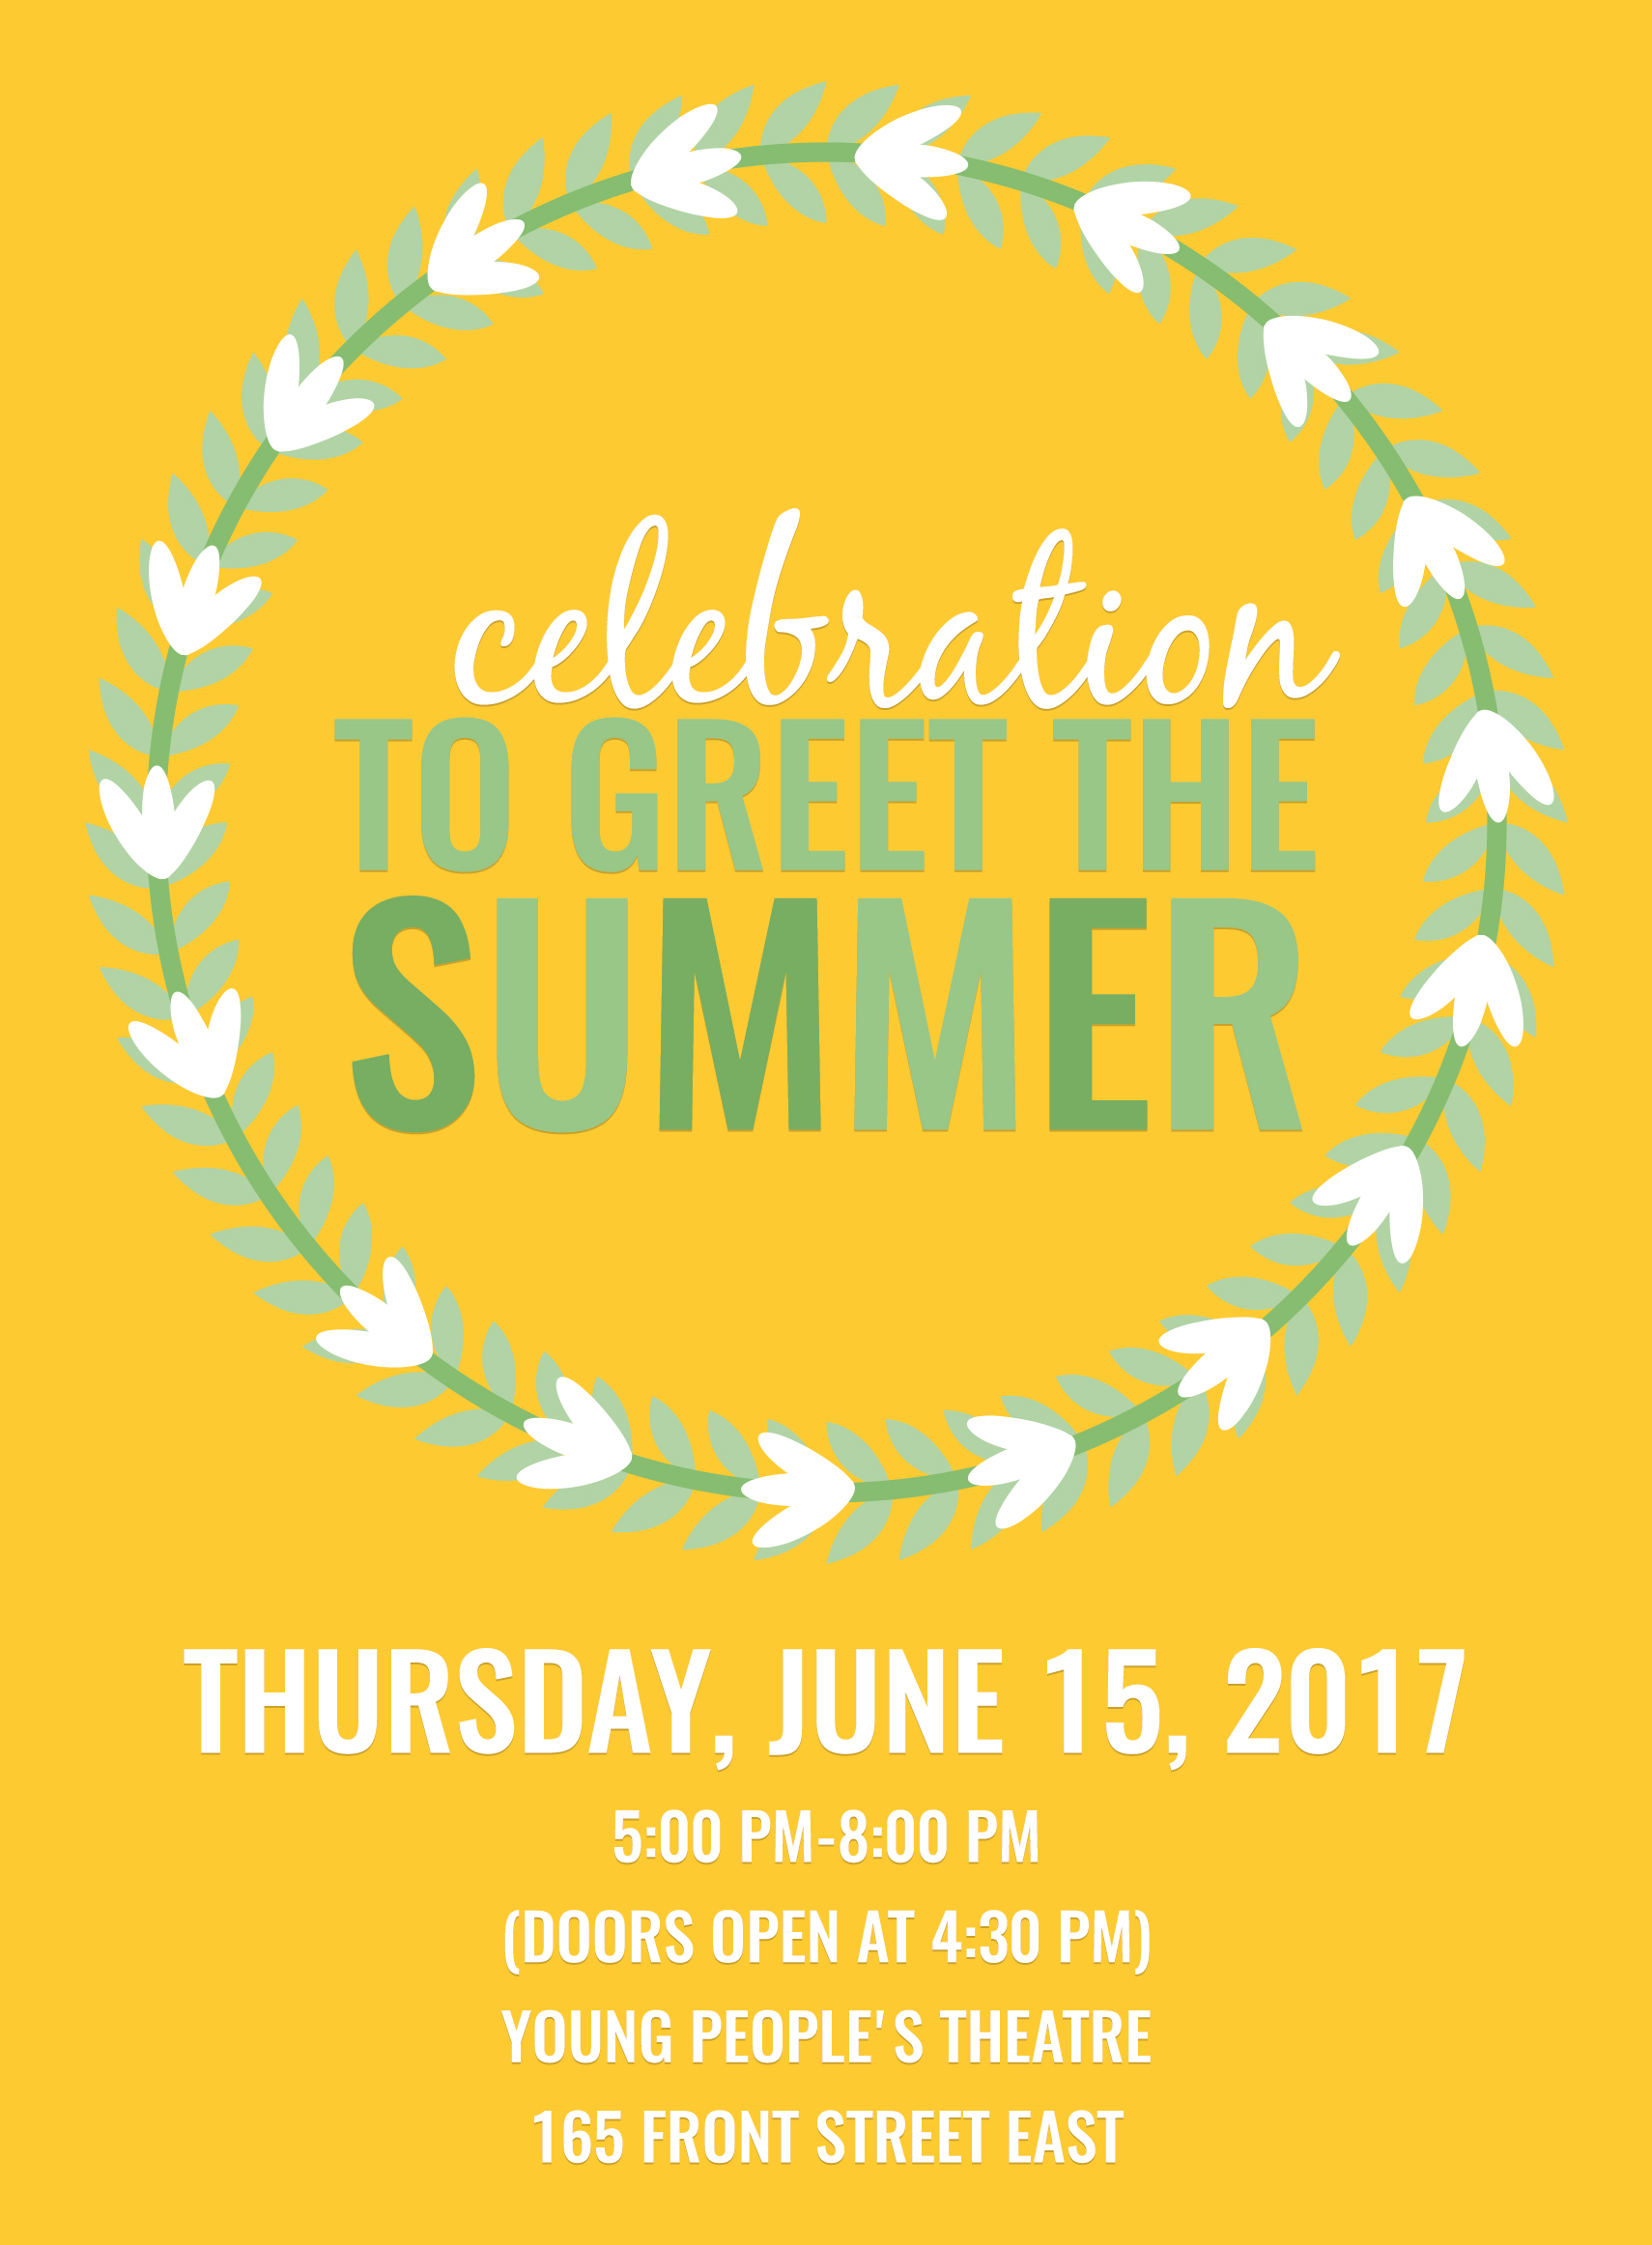 2017_Celebration_Digital_invite_final.jpg